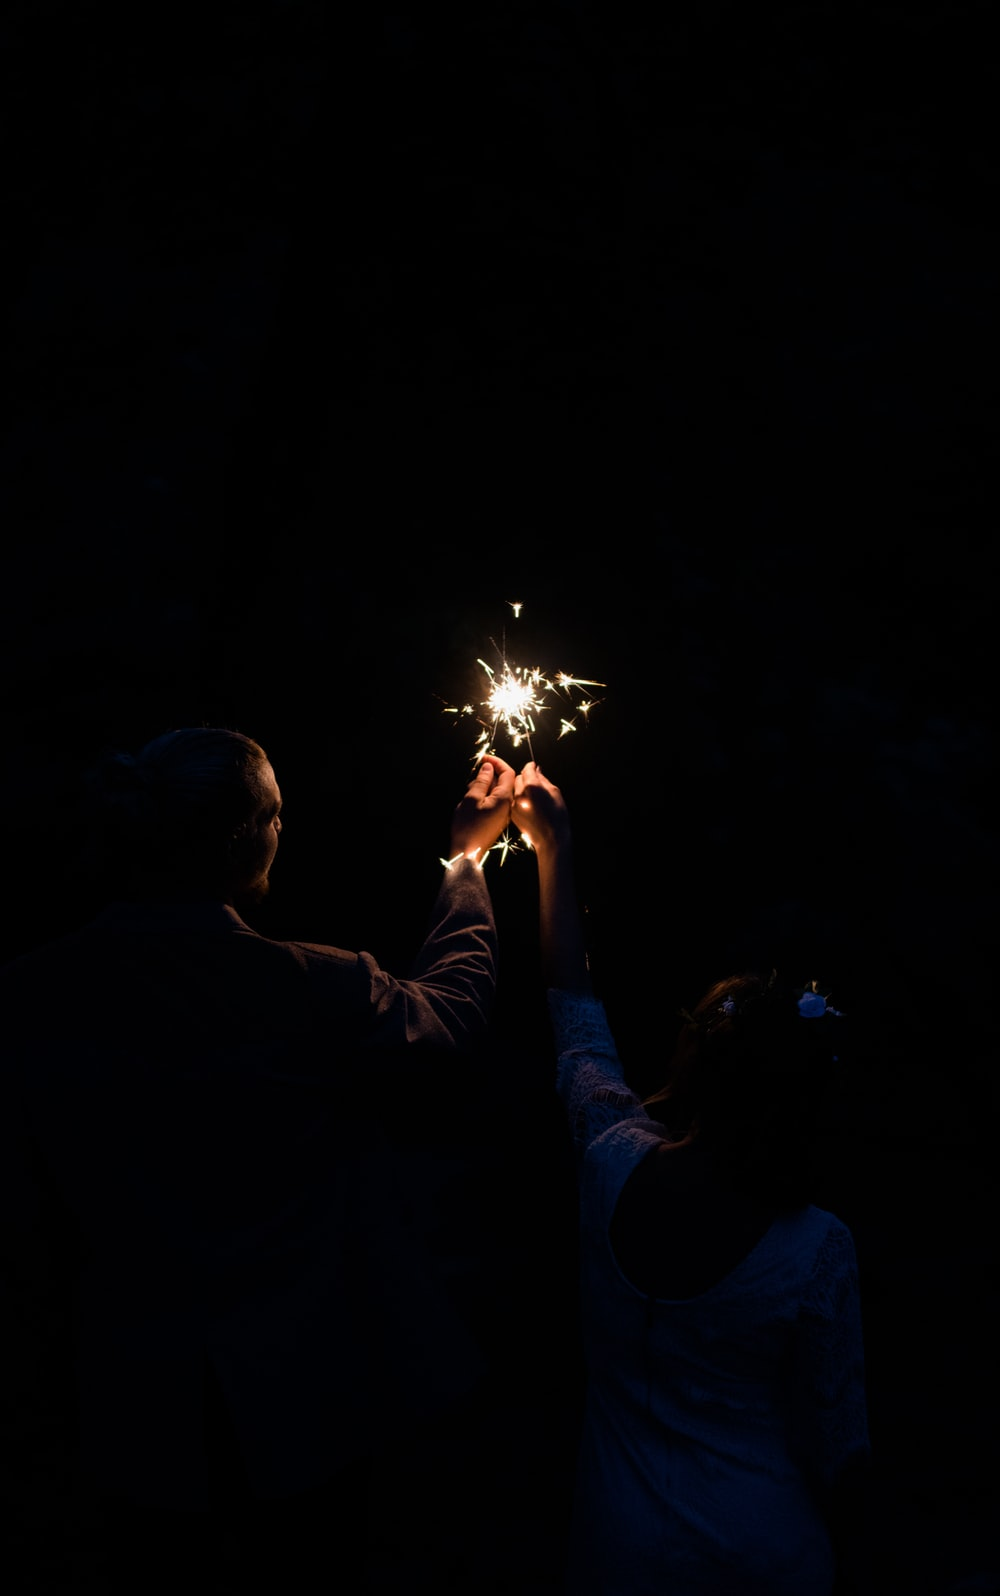 man and woman holding firecracker at nighttime